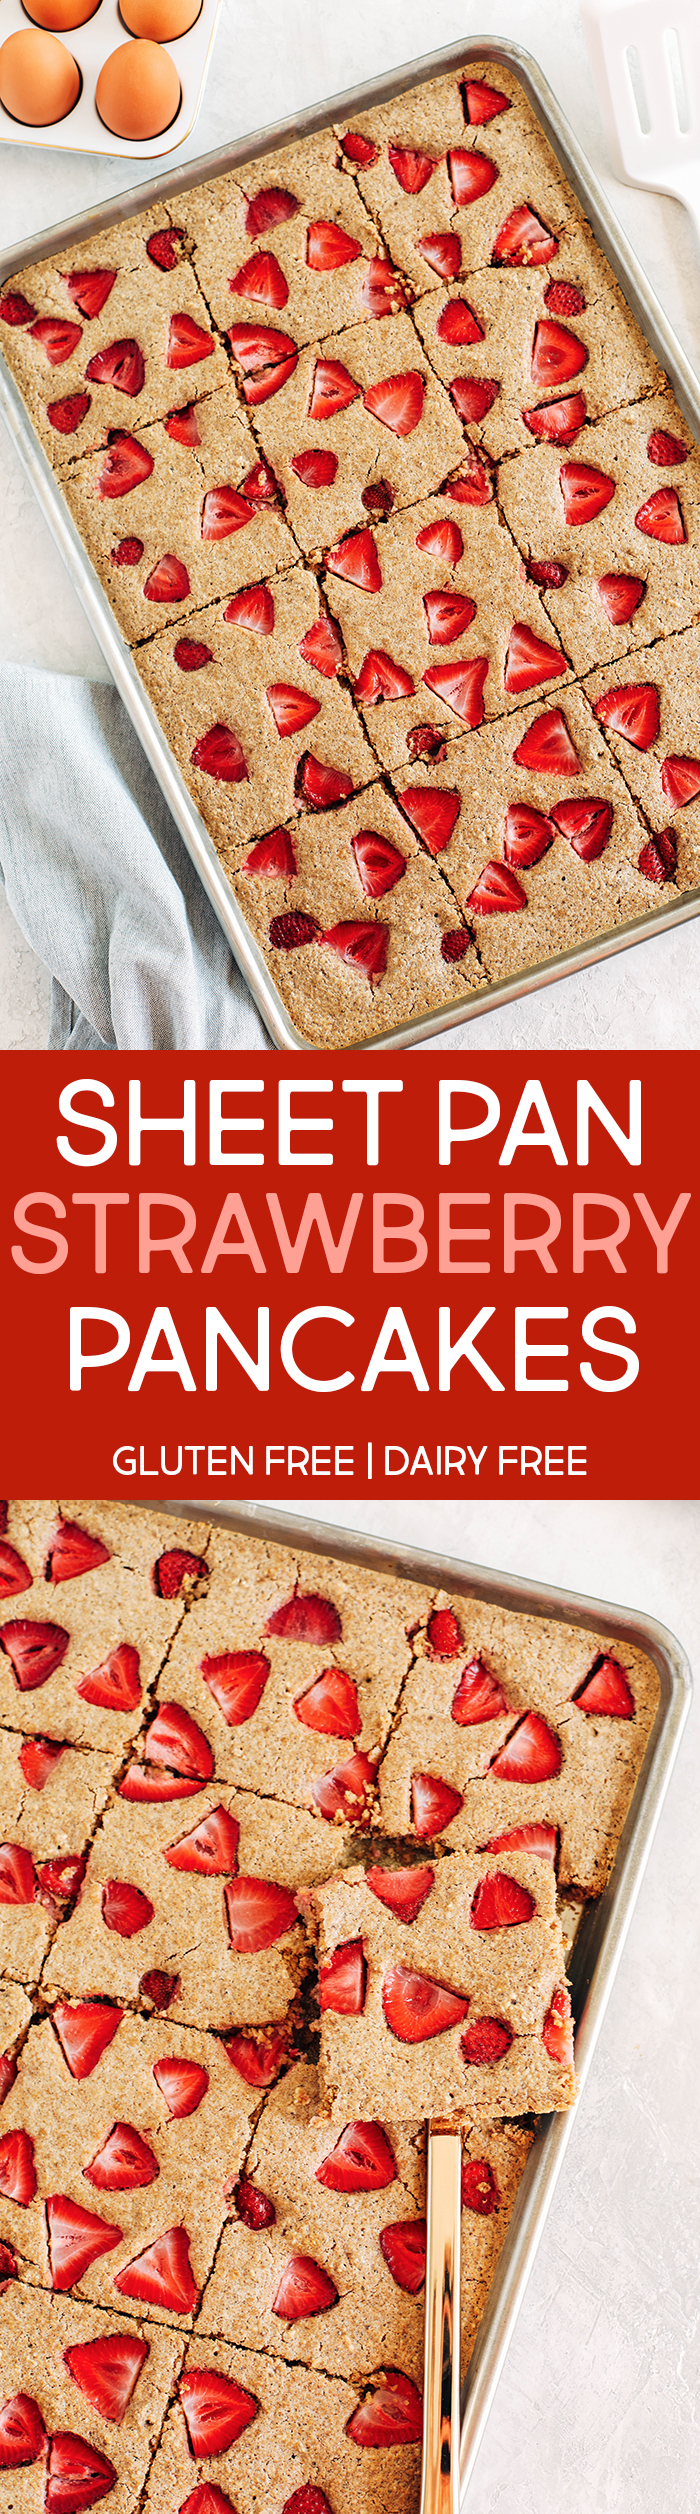 These quick and easy Sheet Pan Strawberry Pancakes are the best way to make a bunch of pancakes all at once and are ready in just 15 minutes!  Gluten free and perfect for a crowd!